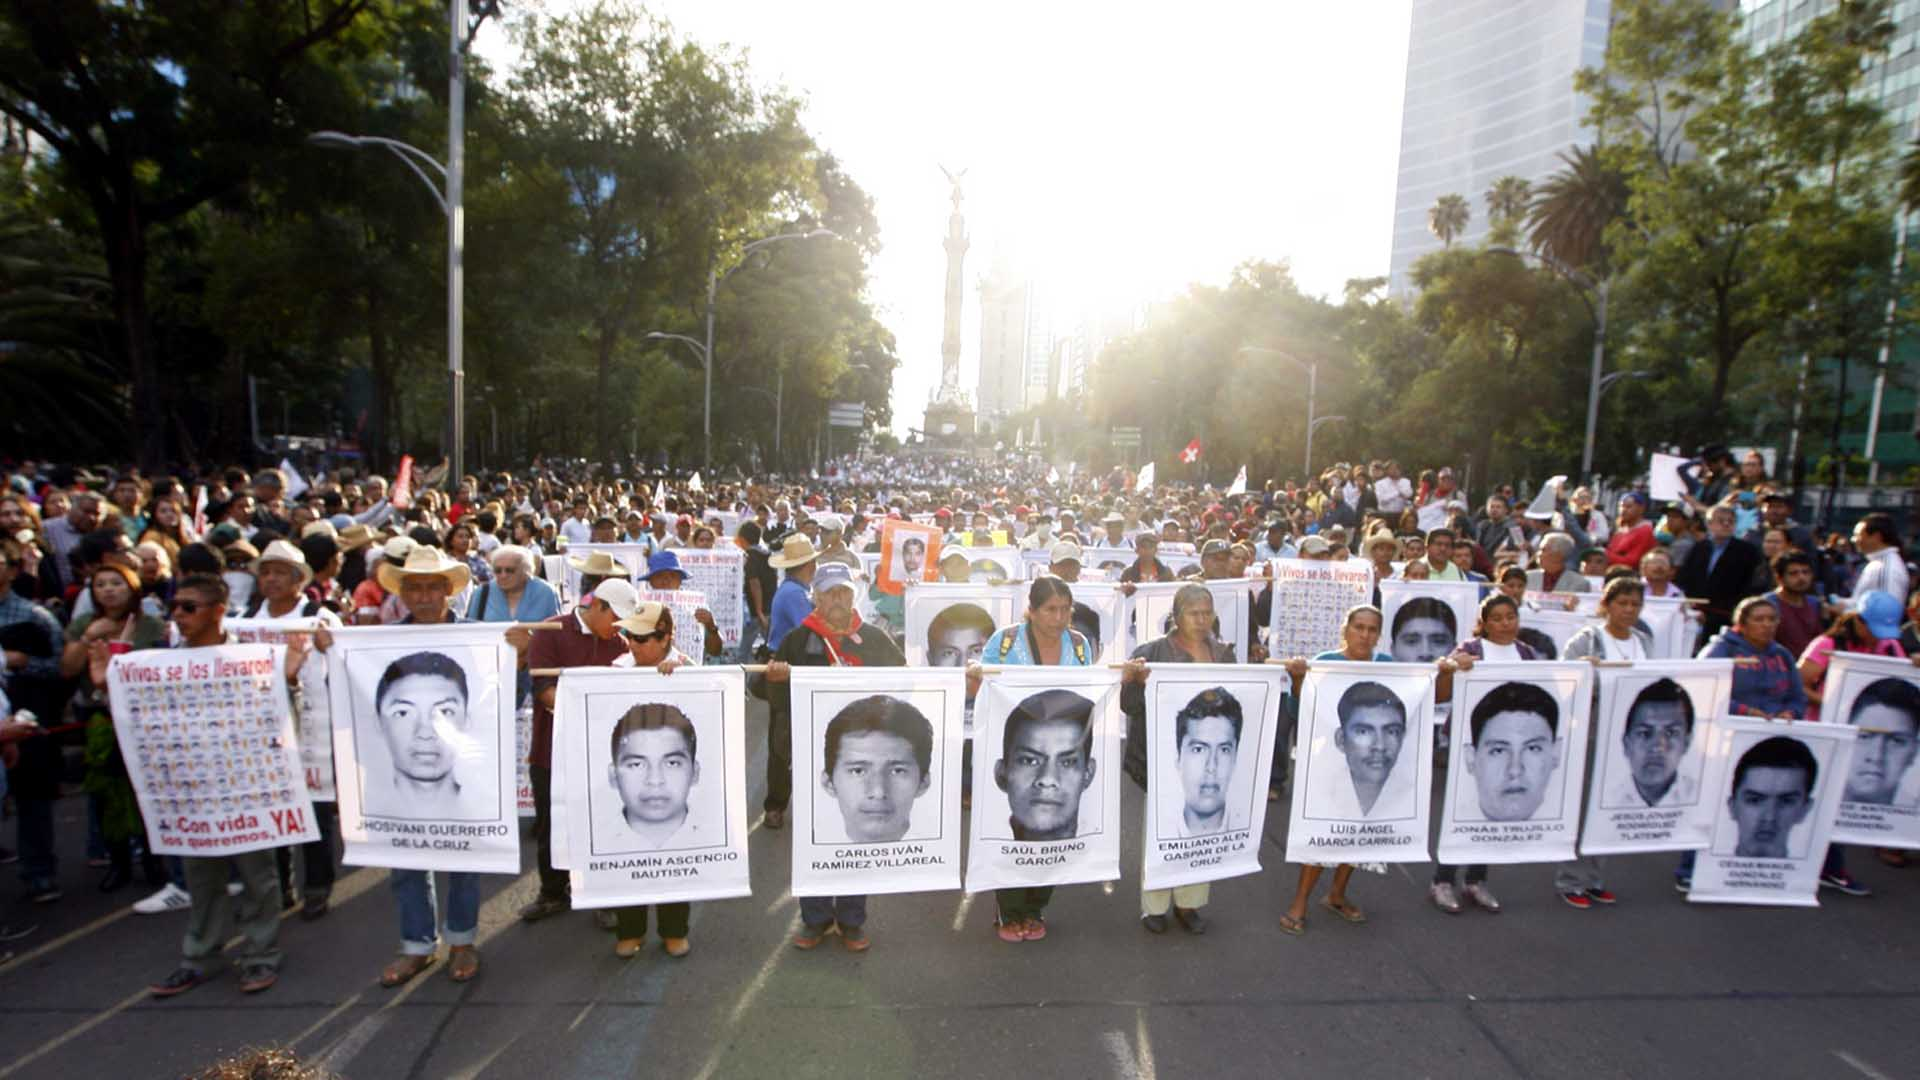 Mexico: How to repudiate the electoral trap?